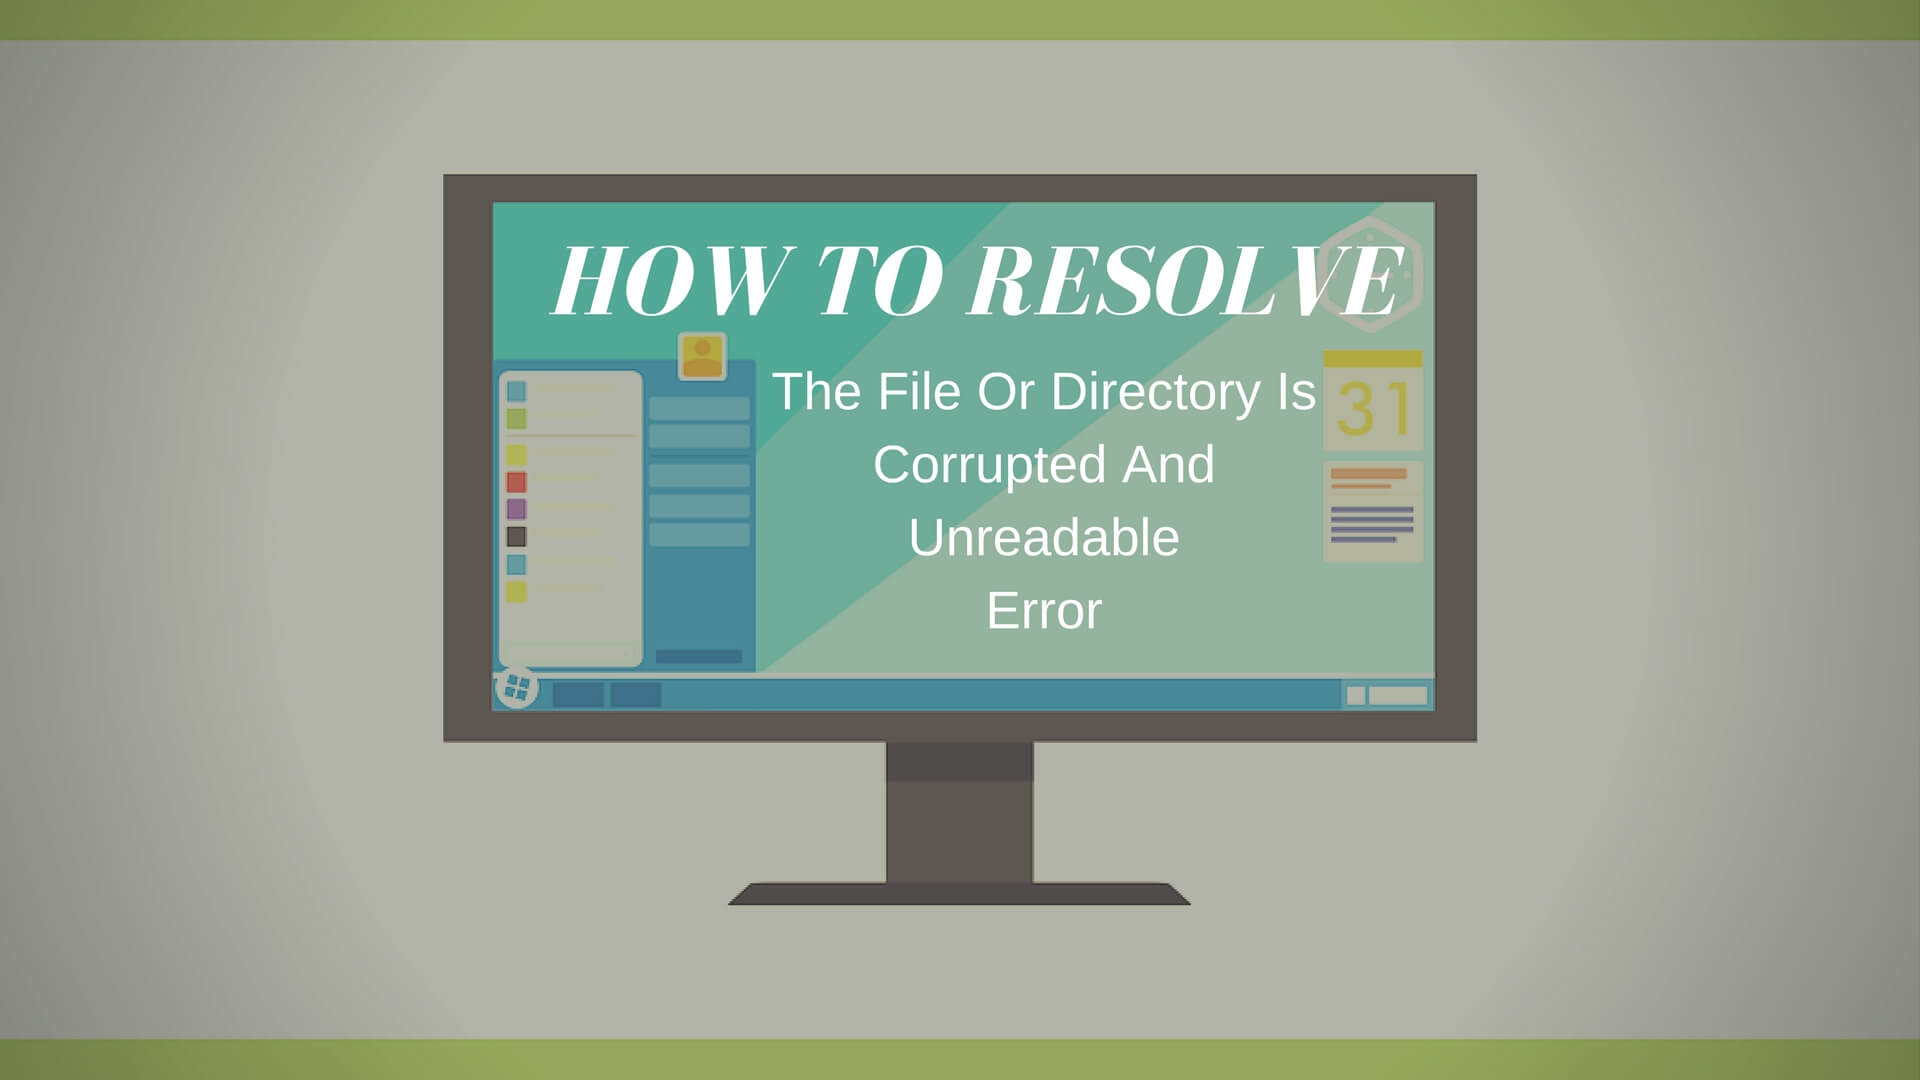 Drive H is not accessible. The file or directory is corrupted and unreadable